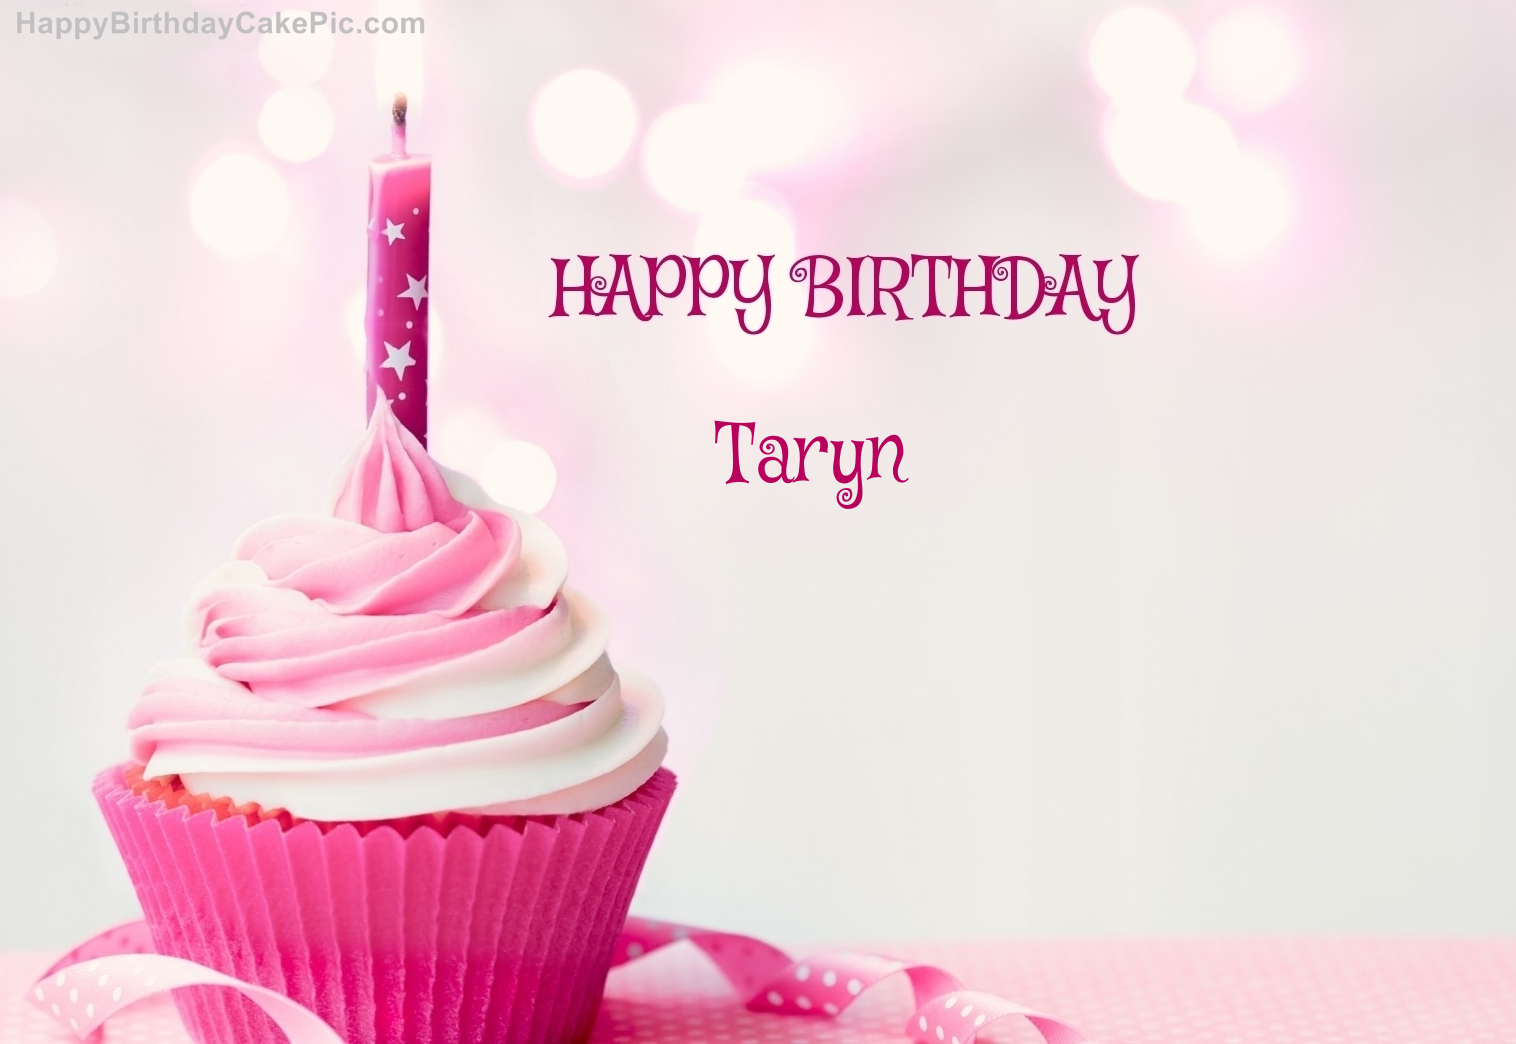 ️ Happy Birthday Cupcake Candle Pink Cake For Taryn